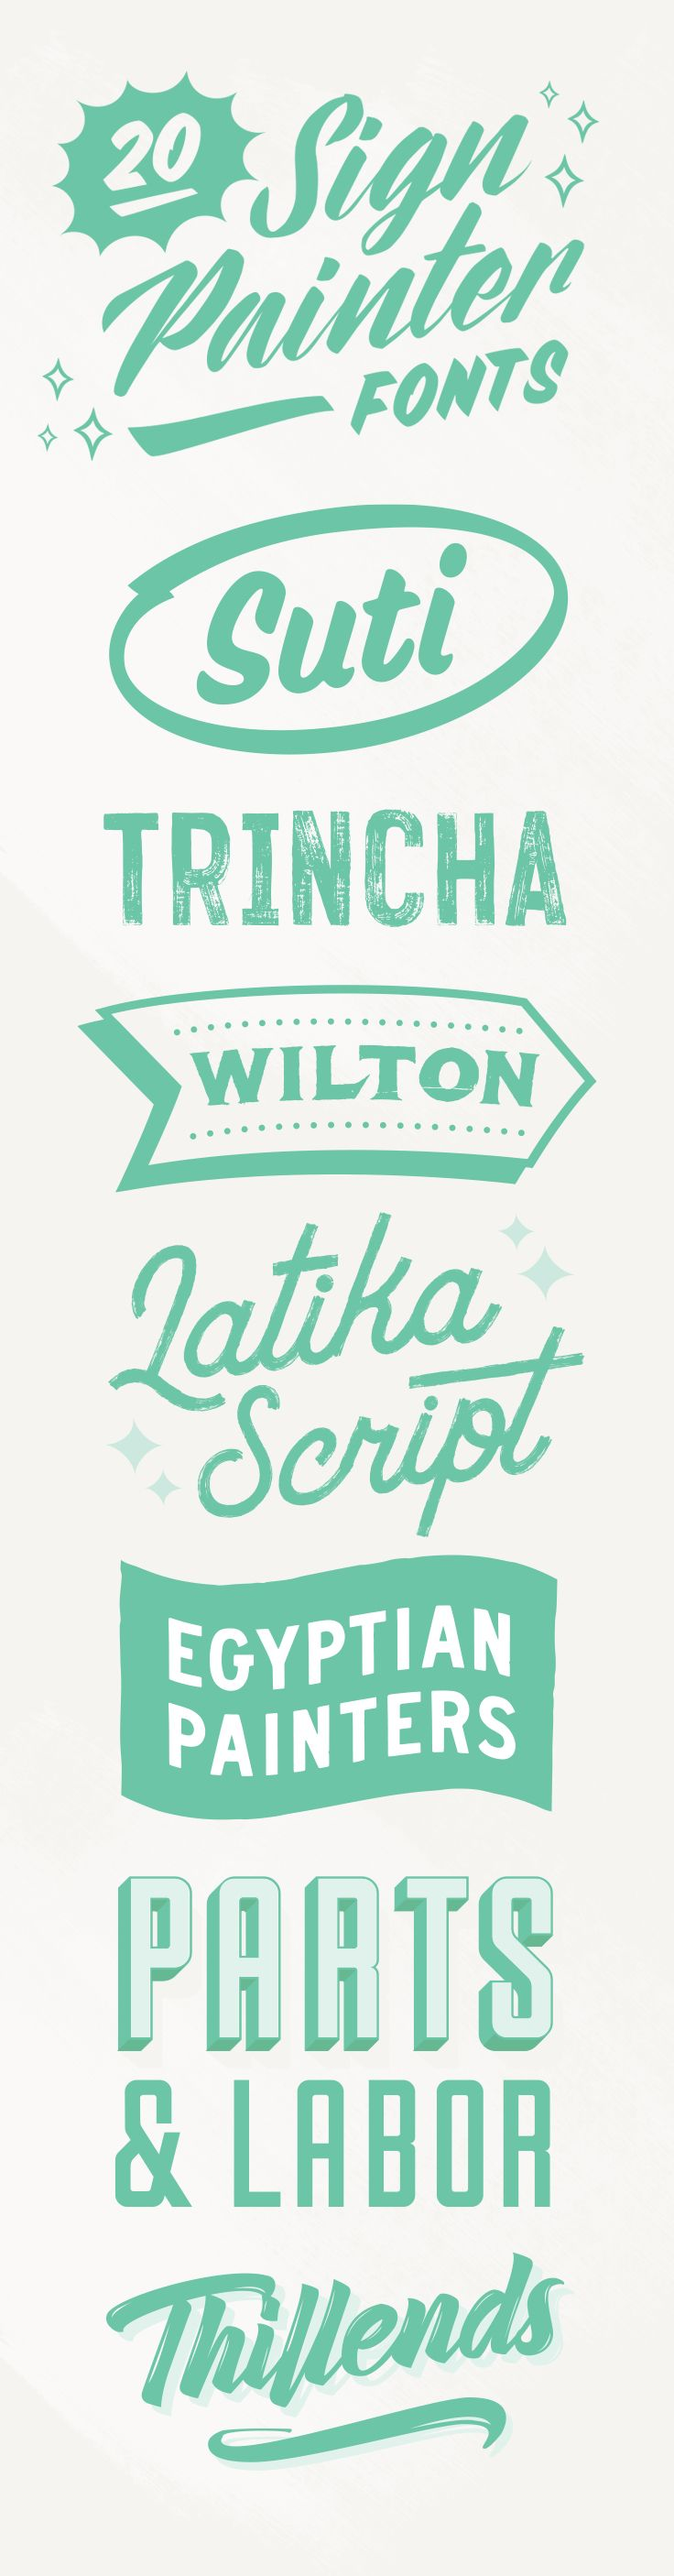 20 Sign Painter Fonts To Create Labels Signs And Cards Lettering Sign Painting Lettering Sign Fonts